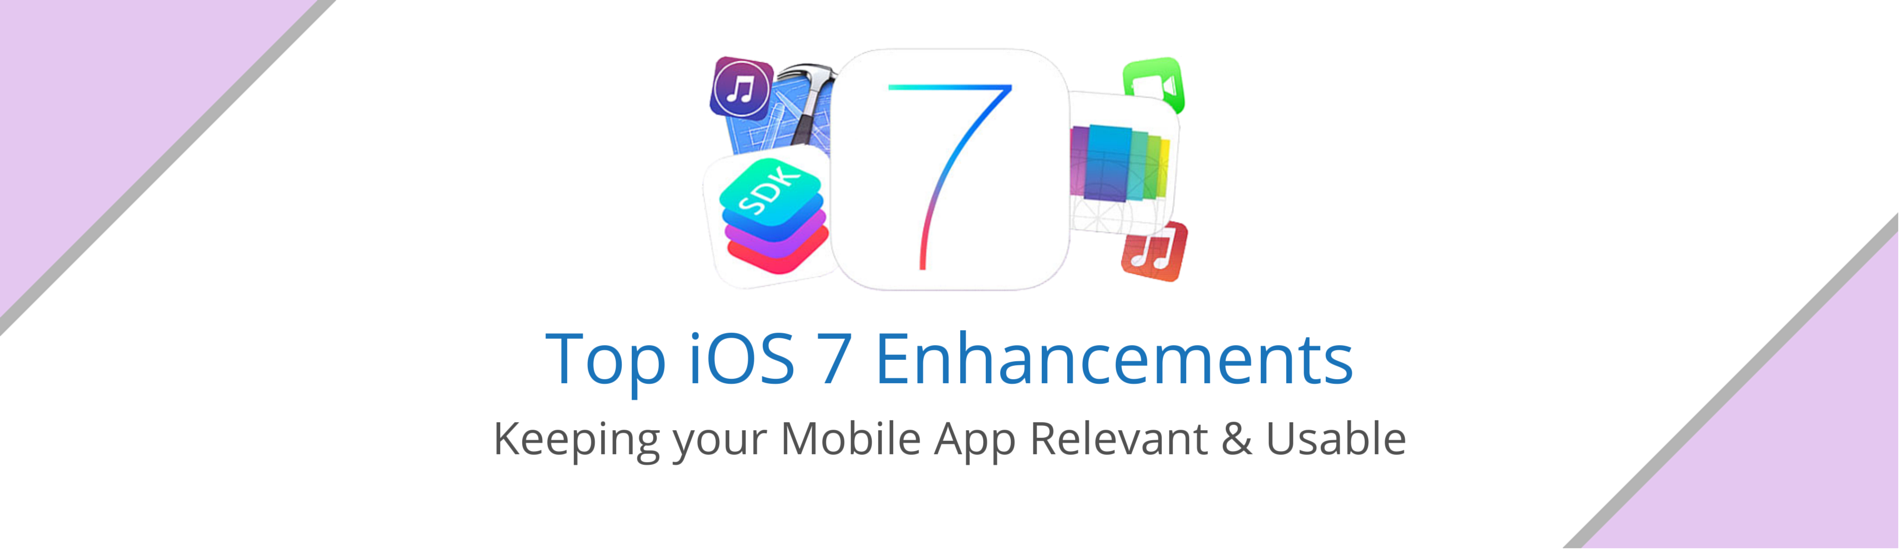 ios_7_webinar_header.png